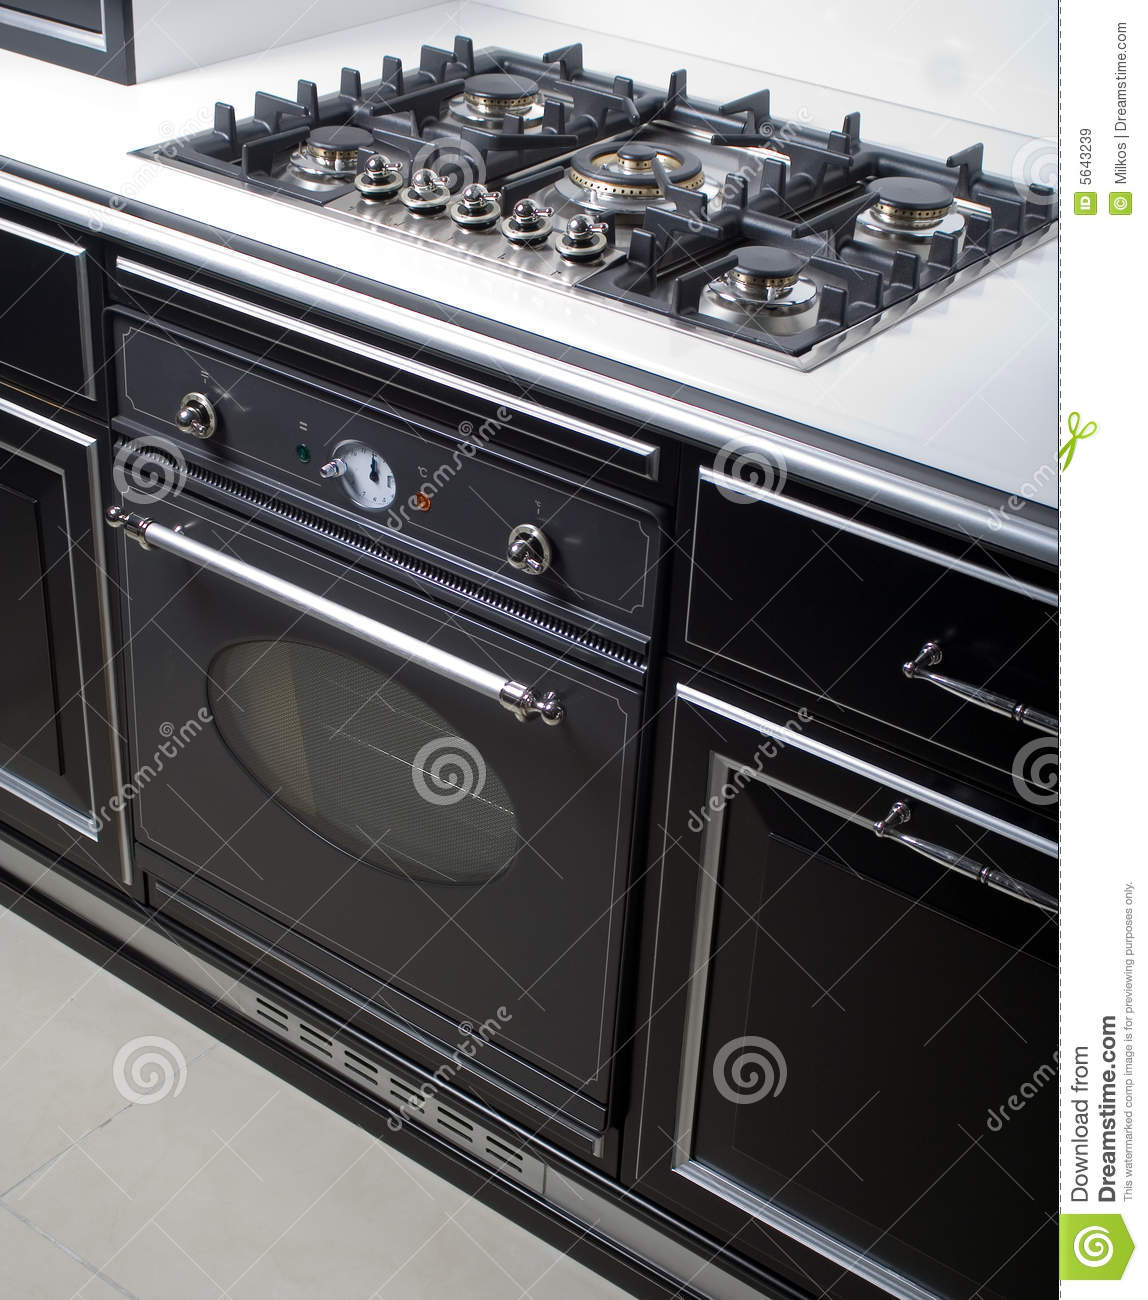 Oven Boretti Modern Gas Stove And Oven Stock Image. Image Of Stove